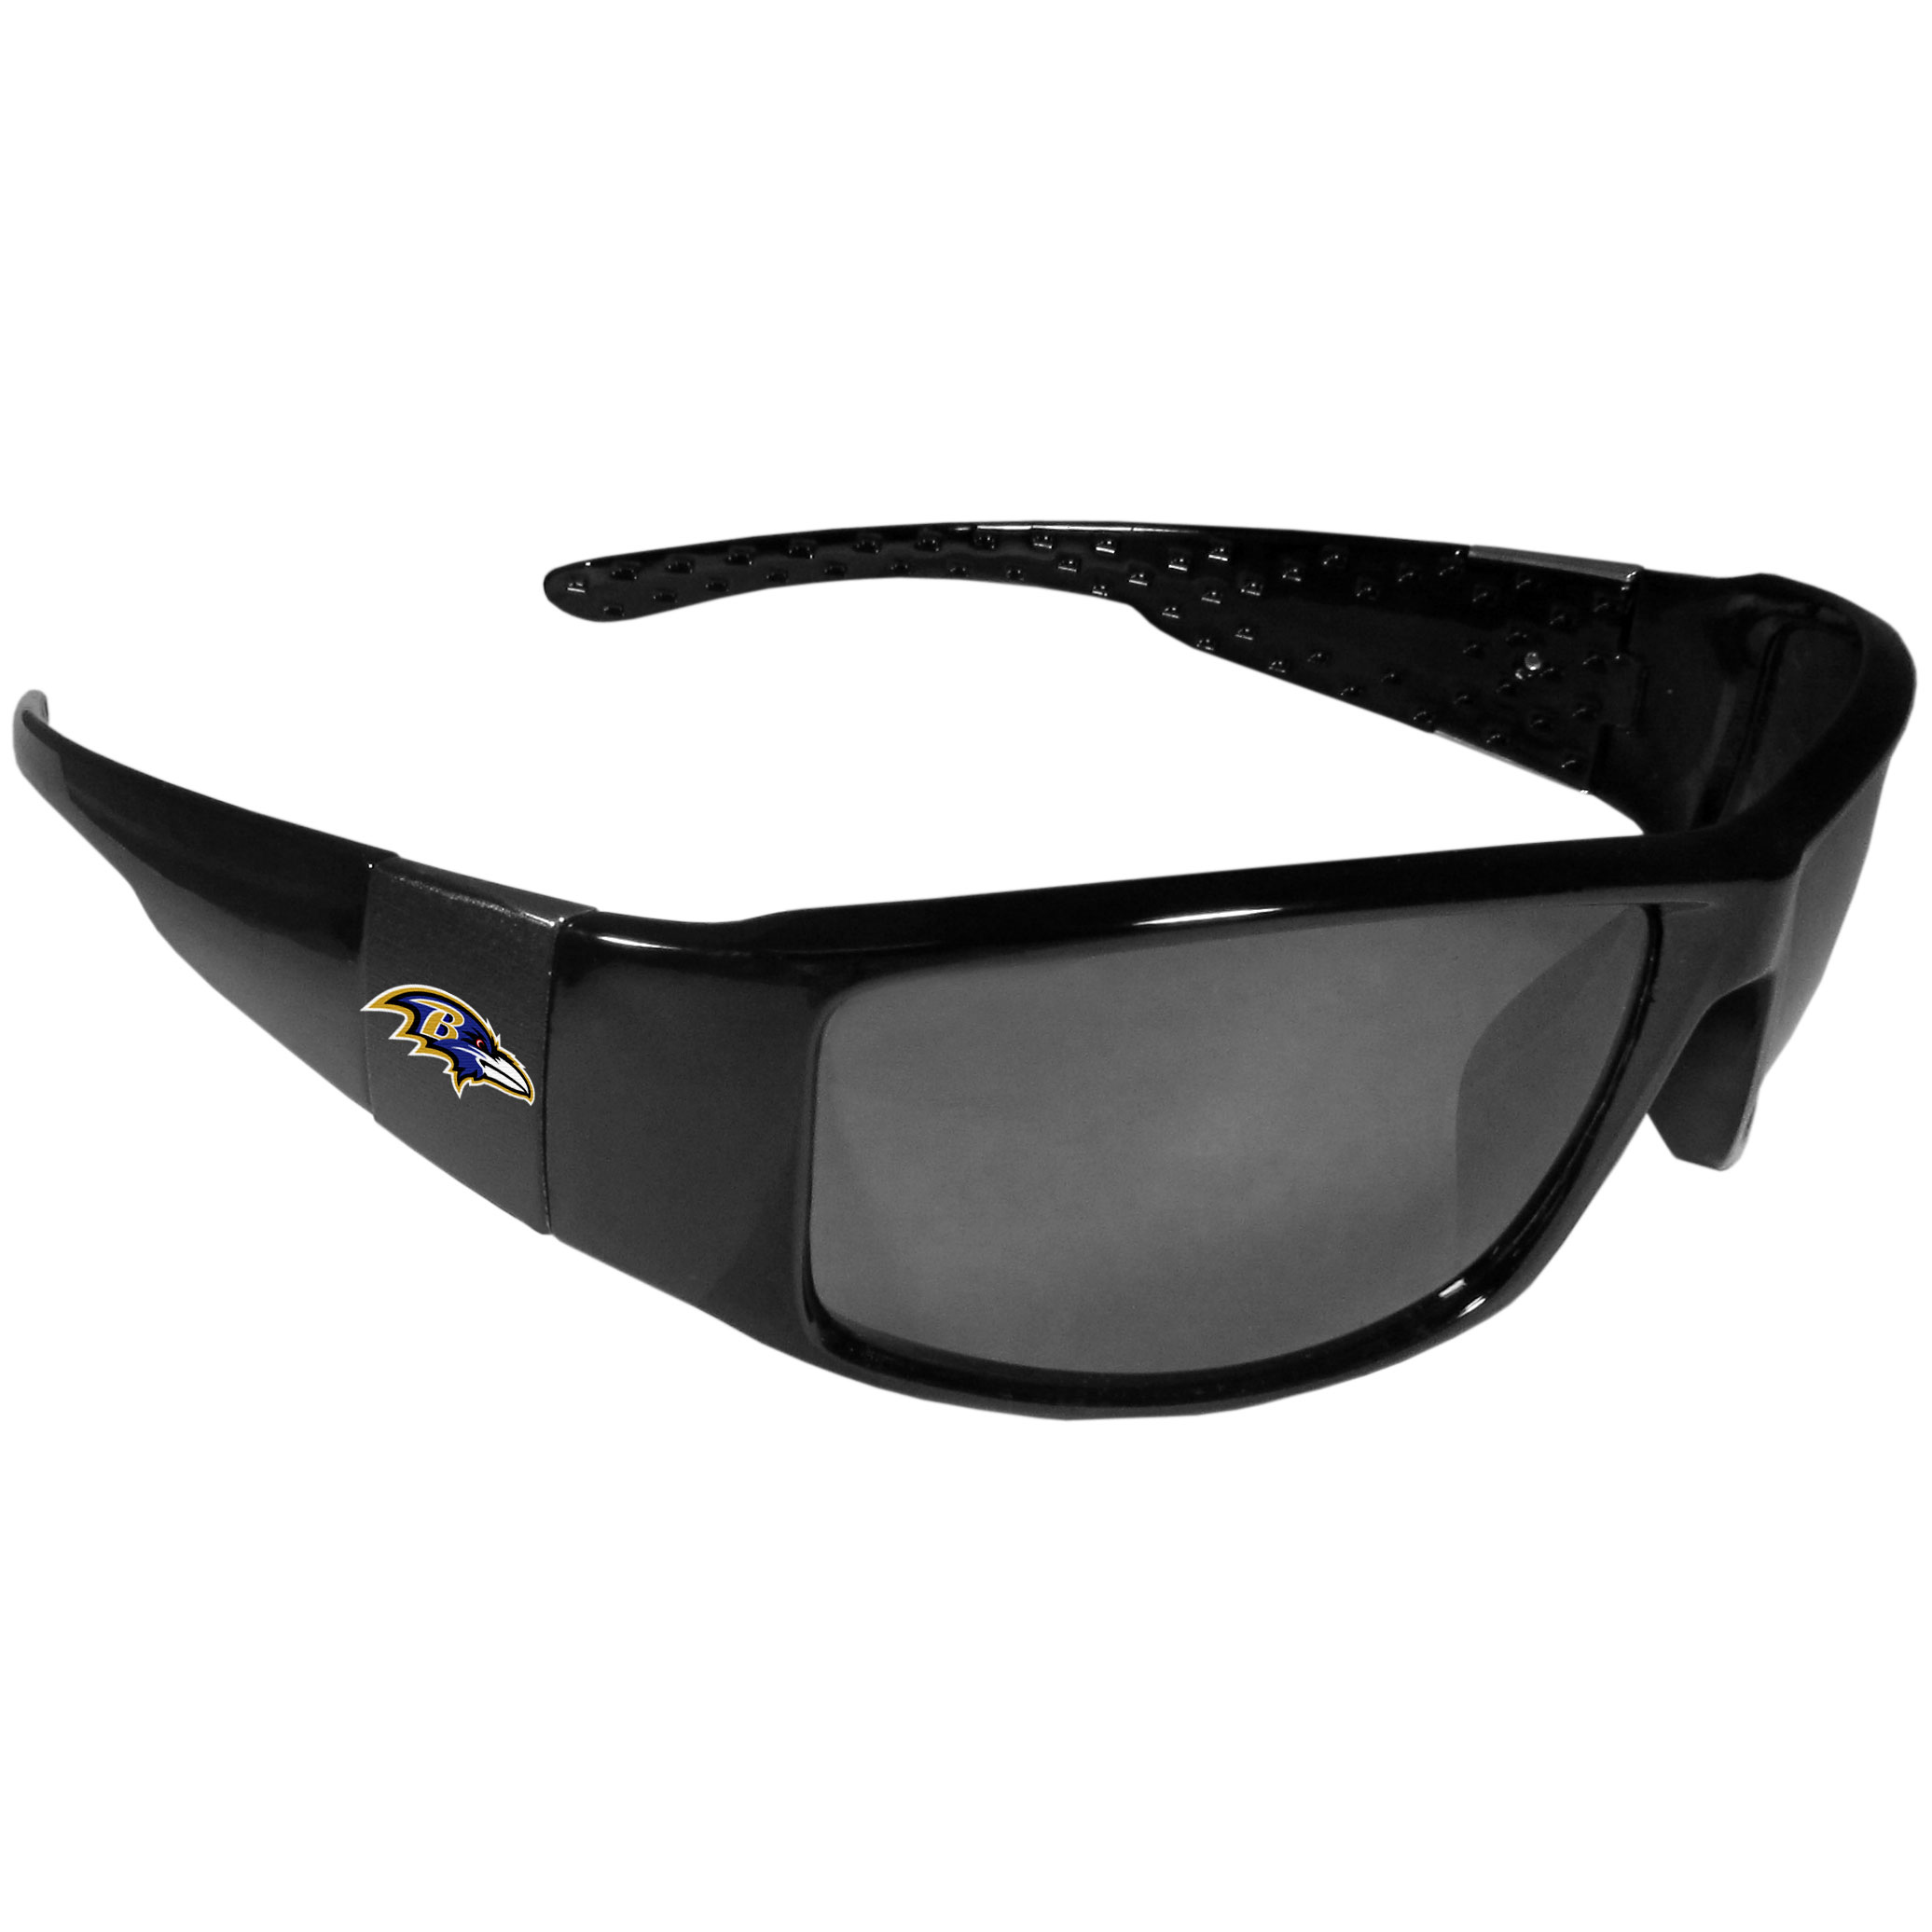 Baltimore Ravens Black Wrap Sunglasses - These designer inspired frames have a sleek look in all black with  Baltimore Ravens shields on each arm with a printed logo. The shades are perfect for any outdoor activity like; golfing, driving, hiking, fishing or cheering on the team at a tailgating event or at a home game day BBQ with a lens rating of 100% UVA/UVB for maximum UV protection. The high-quality frames are as durable as they are fashionable and with their classic look they are the perfect fan accessory that can be worn everyday for every occasion.